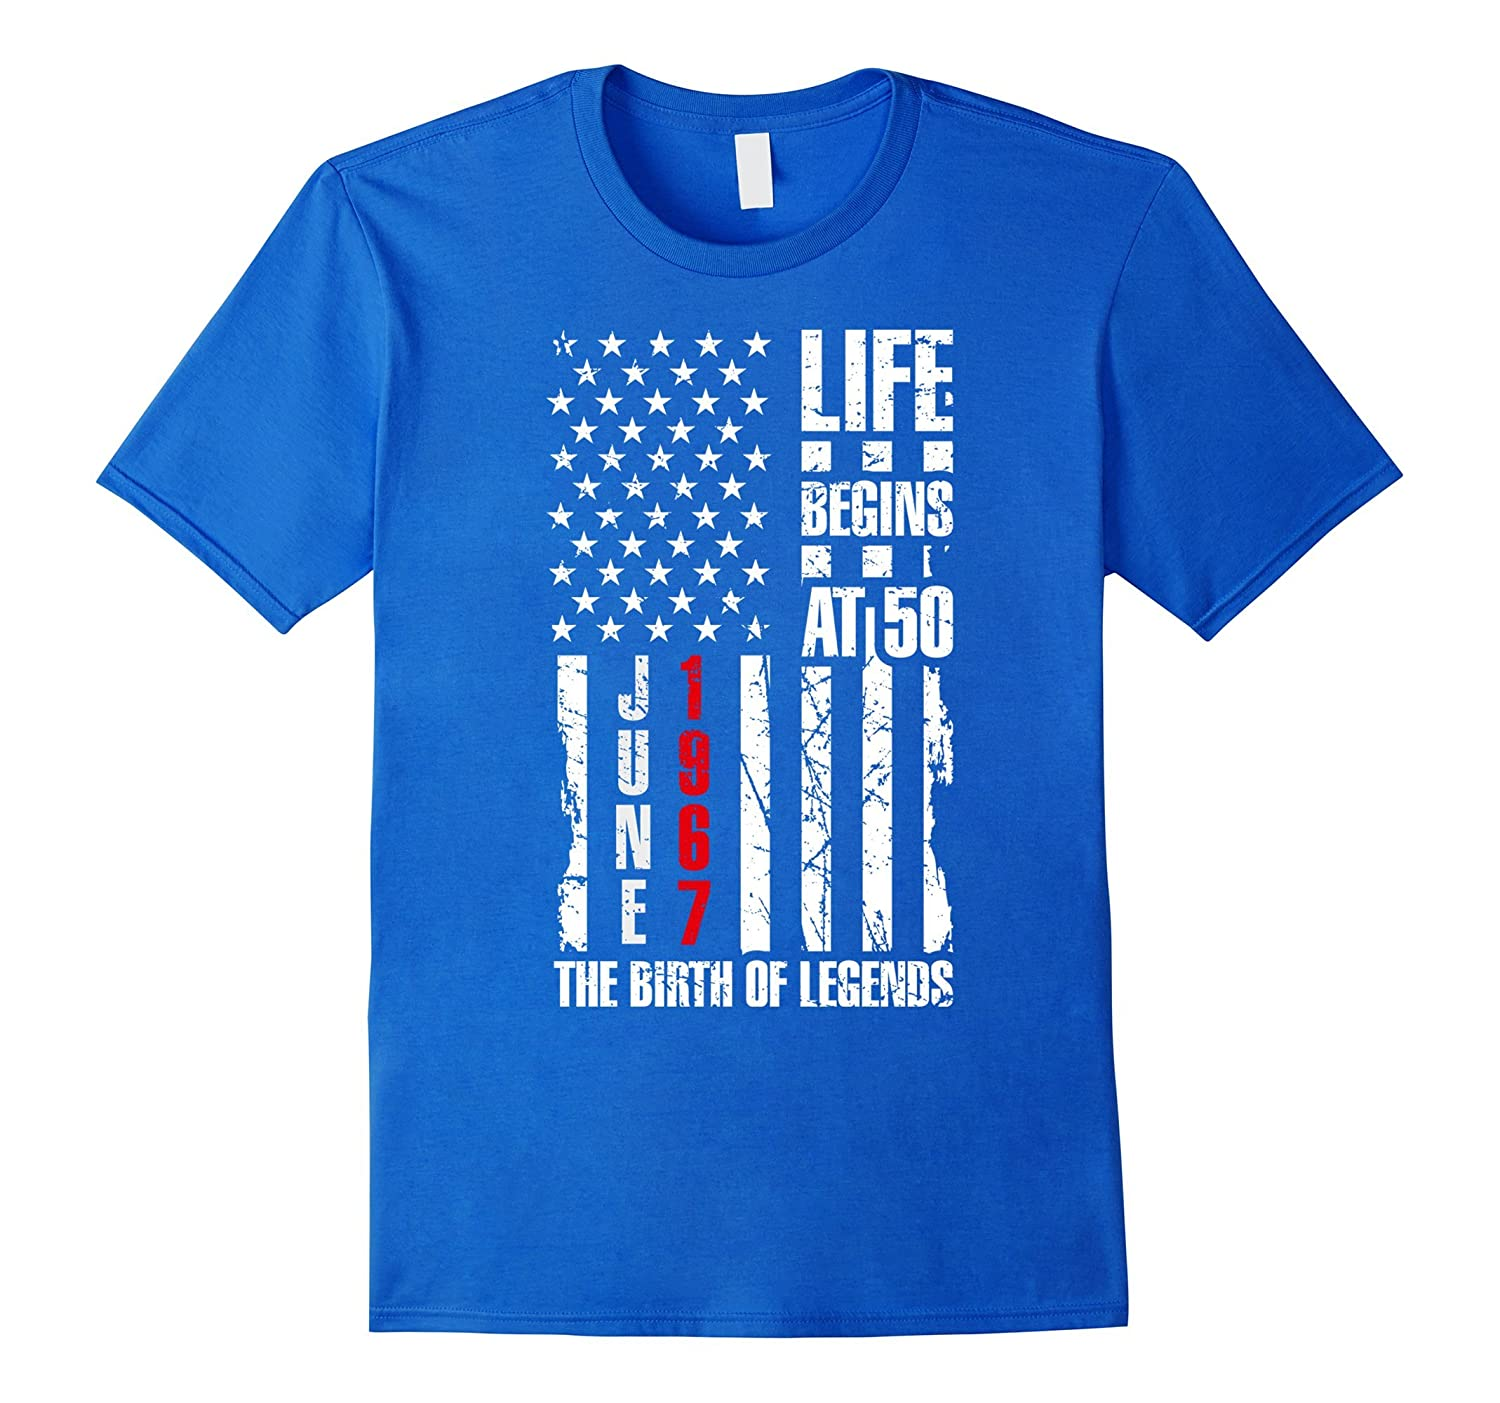 50th Birthday Gift Shirt Life Begins At 50 June 1967 T-Shirt